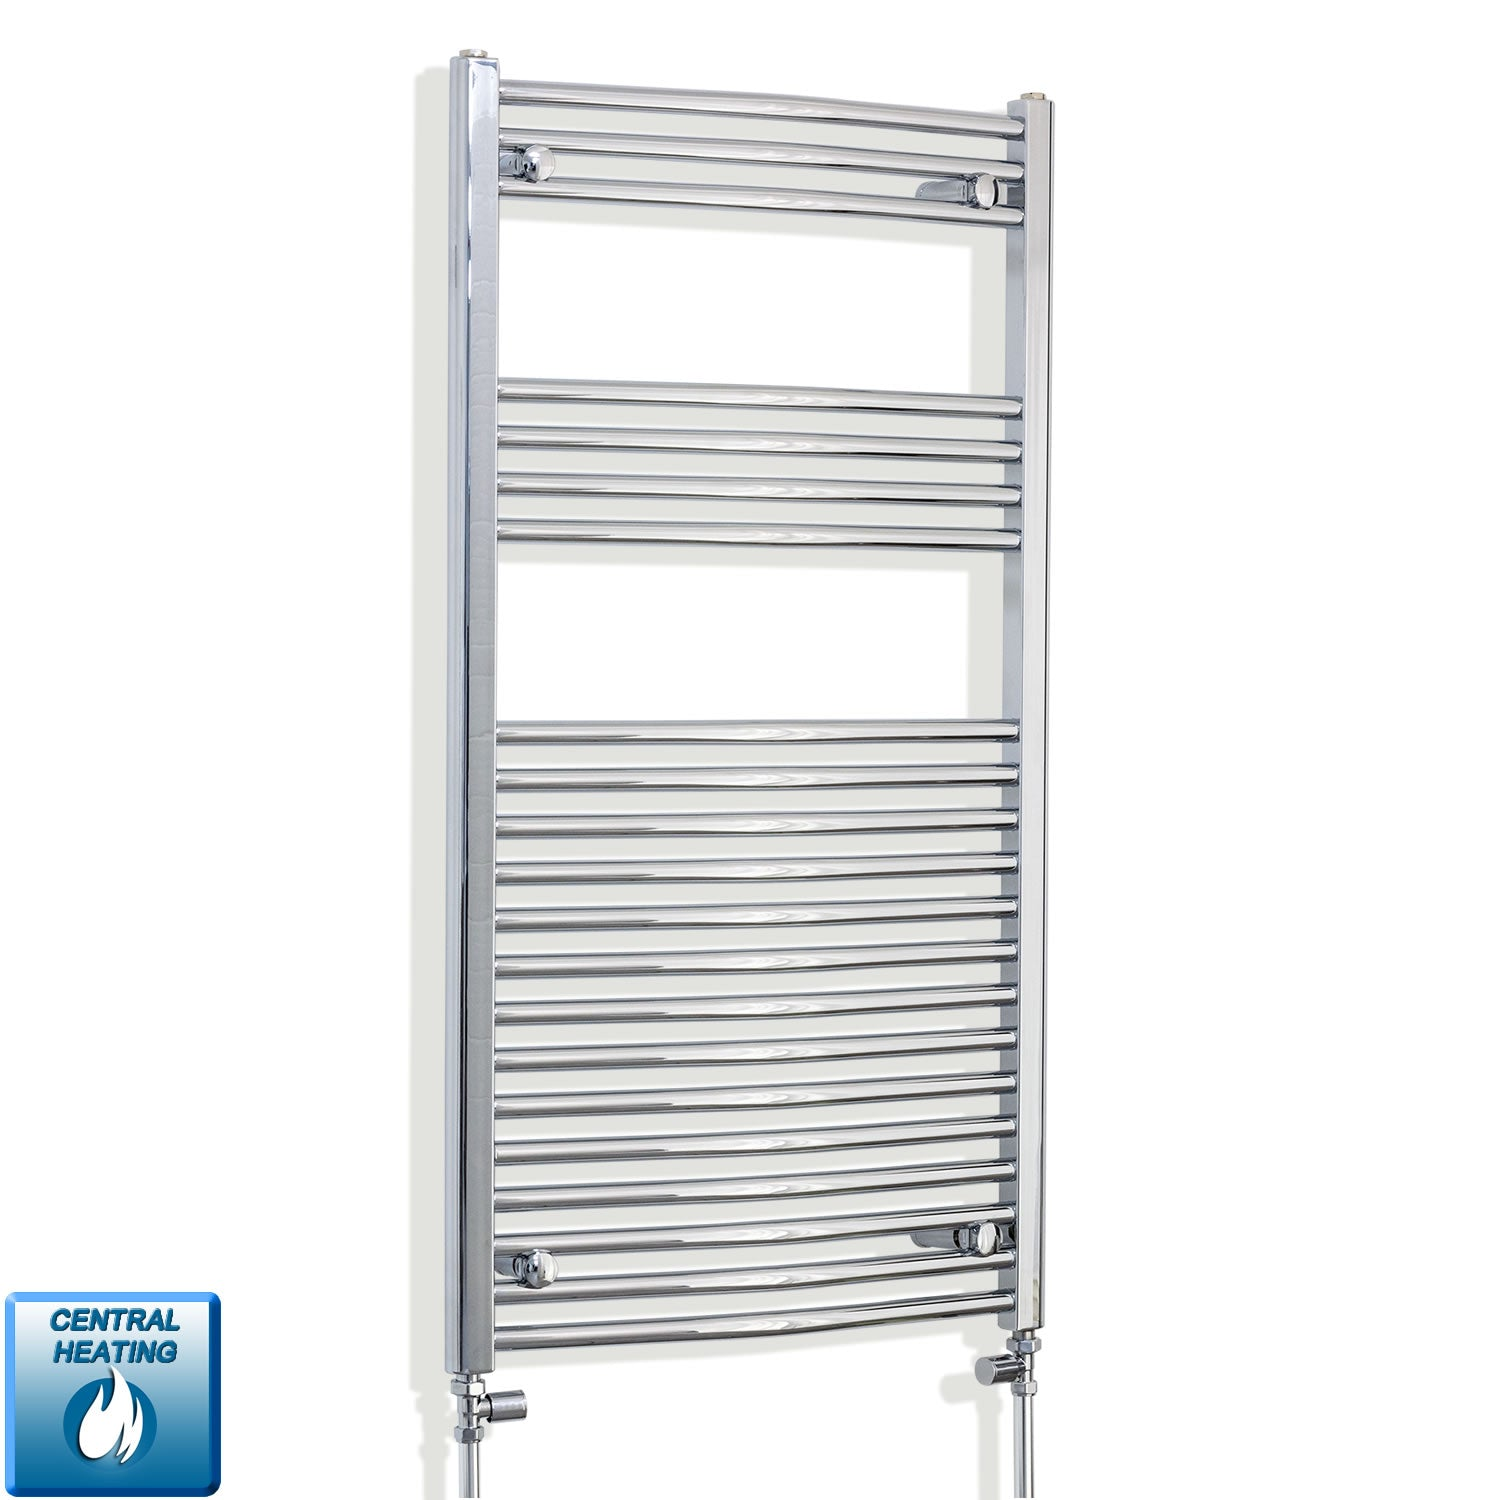 600mm x 1100mm High Curved Chrome Towel Rail Radiator With Straight Valve